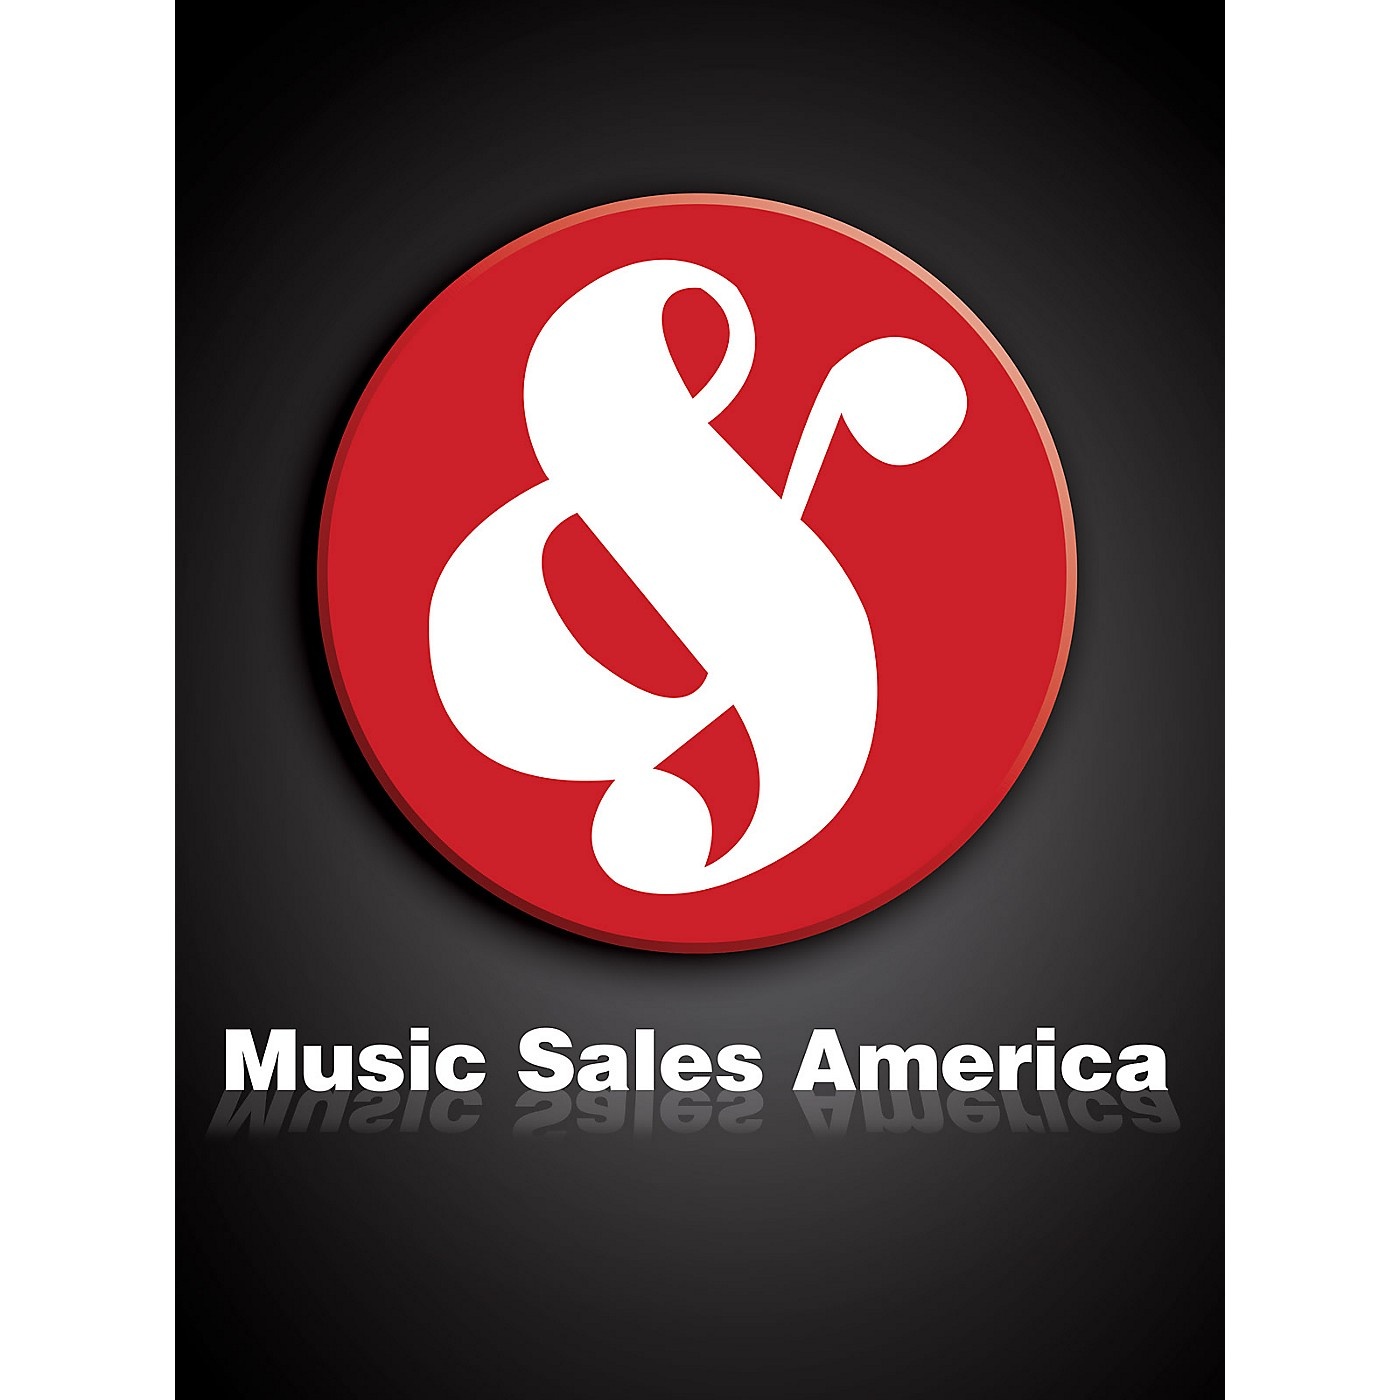 Music Sales A Good Understanding SATB Choir/Treble Choir Composed by Nico Muhly thumbnail